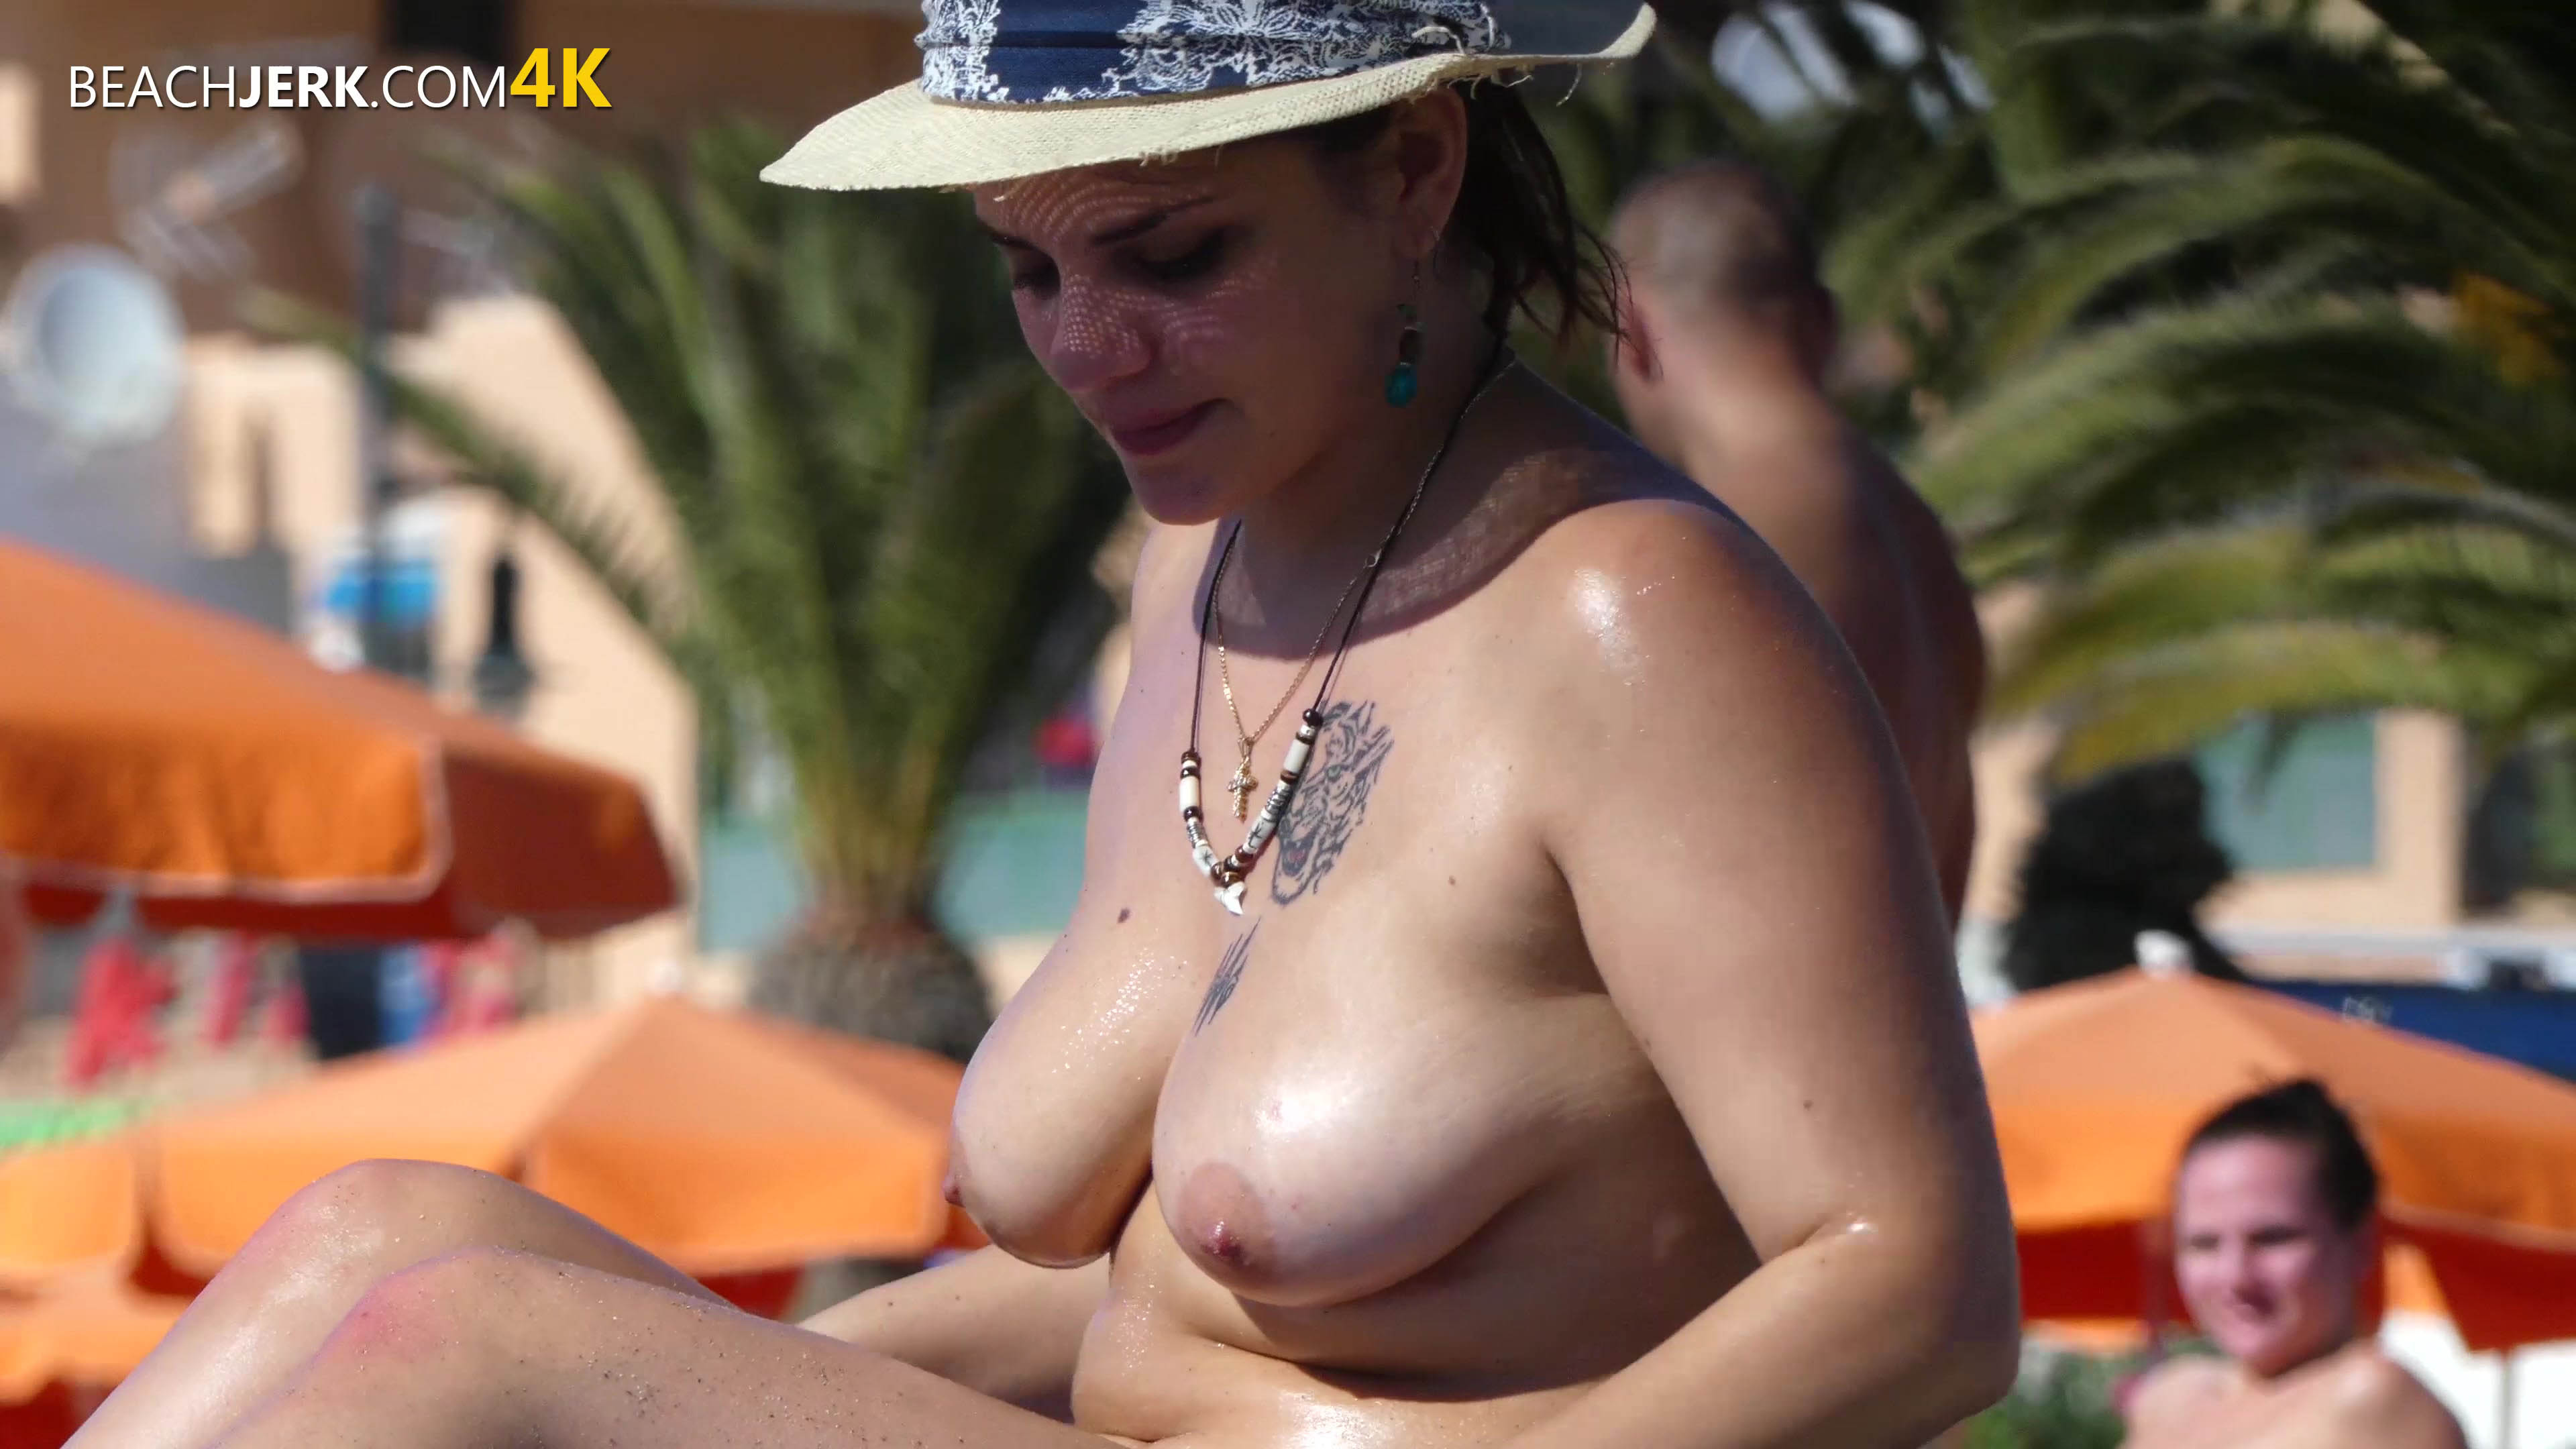 Big Tits Girlfriend - Free voyeuristic photos of topless ...